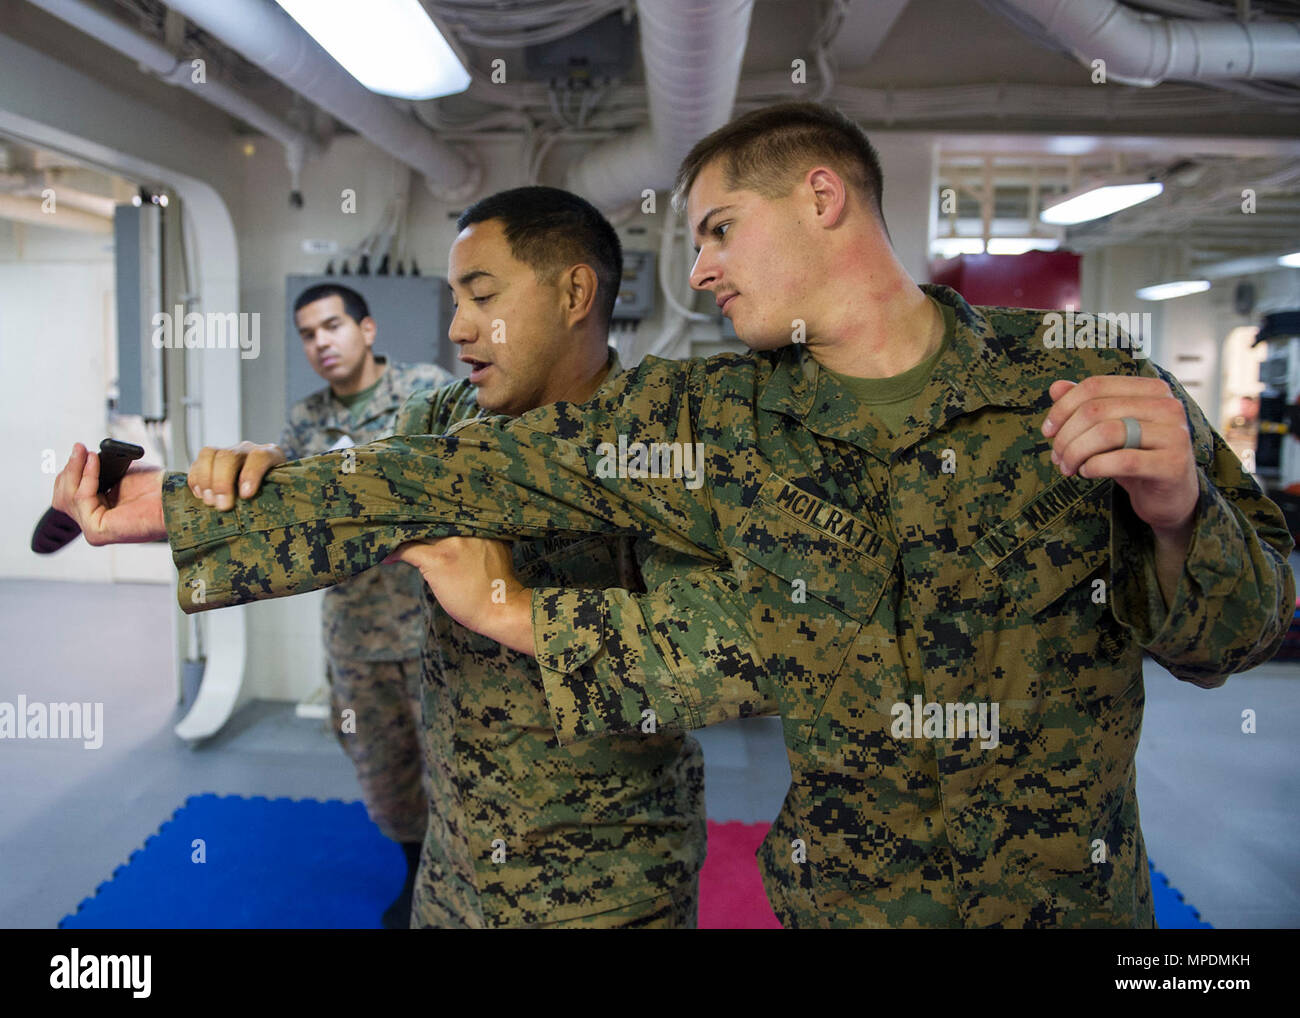 PACIFIC OCEAN (April 10, 2017) Marine Lance Cpl. Stefan Mcilrath (right) and Staff Sgt. Kaluaokal Kaiahua (left), assigned to Marine Expeditionary Unit (MEU) 15, practice mixed martial arts during a Marine Corps Martial Arts Program (MCMAP) training exercise aboard the amphibious assault ship USS America (LHA 6). America is currently underway with more than 1,000 Sailors and 1,600 embarked Marines conducting Amphibious Squadron/Marine Expeditionary Unit Integration operations in preparation for the ship's maiden deployment later this year. - Stock Image